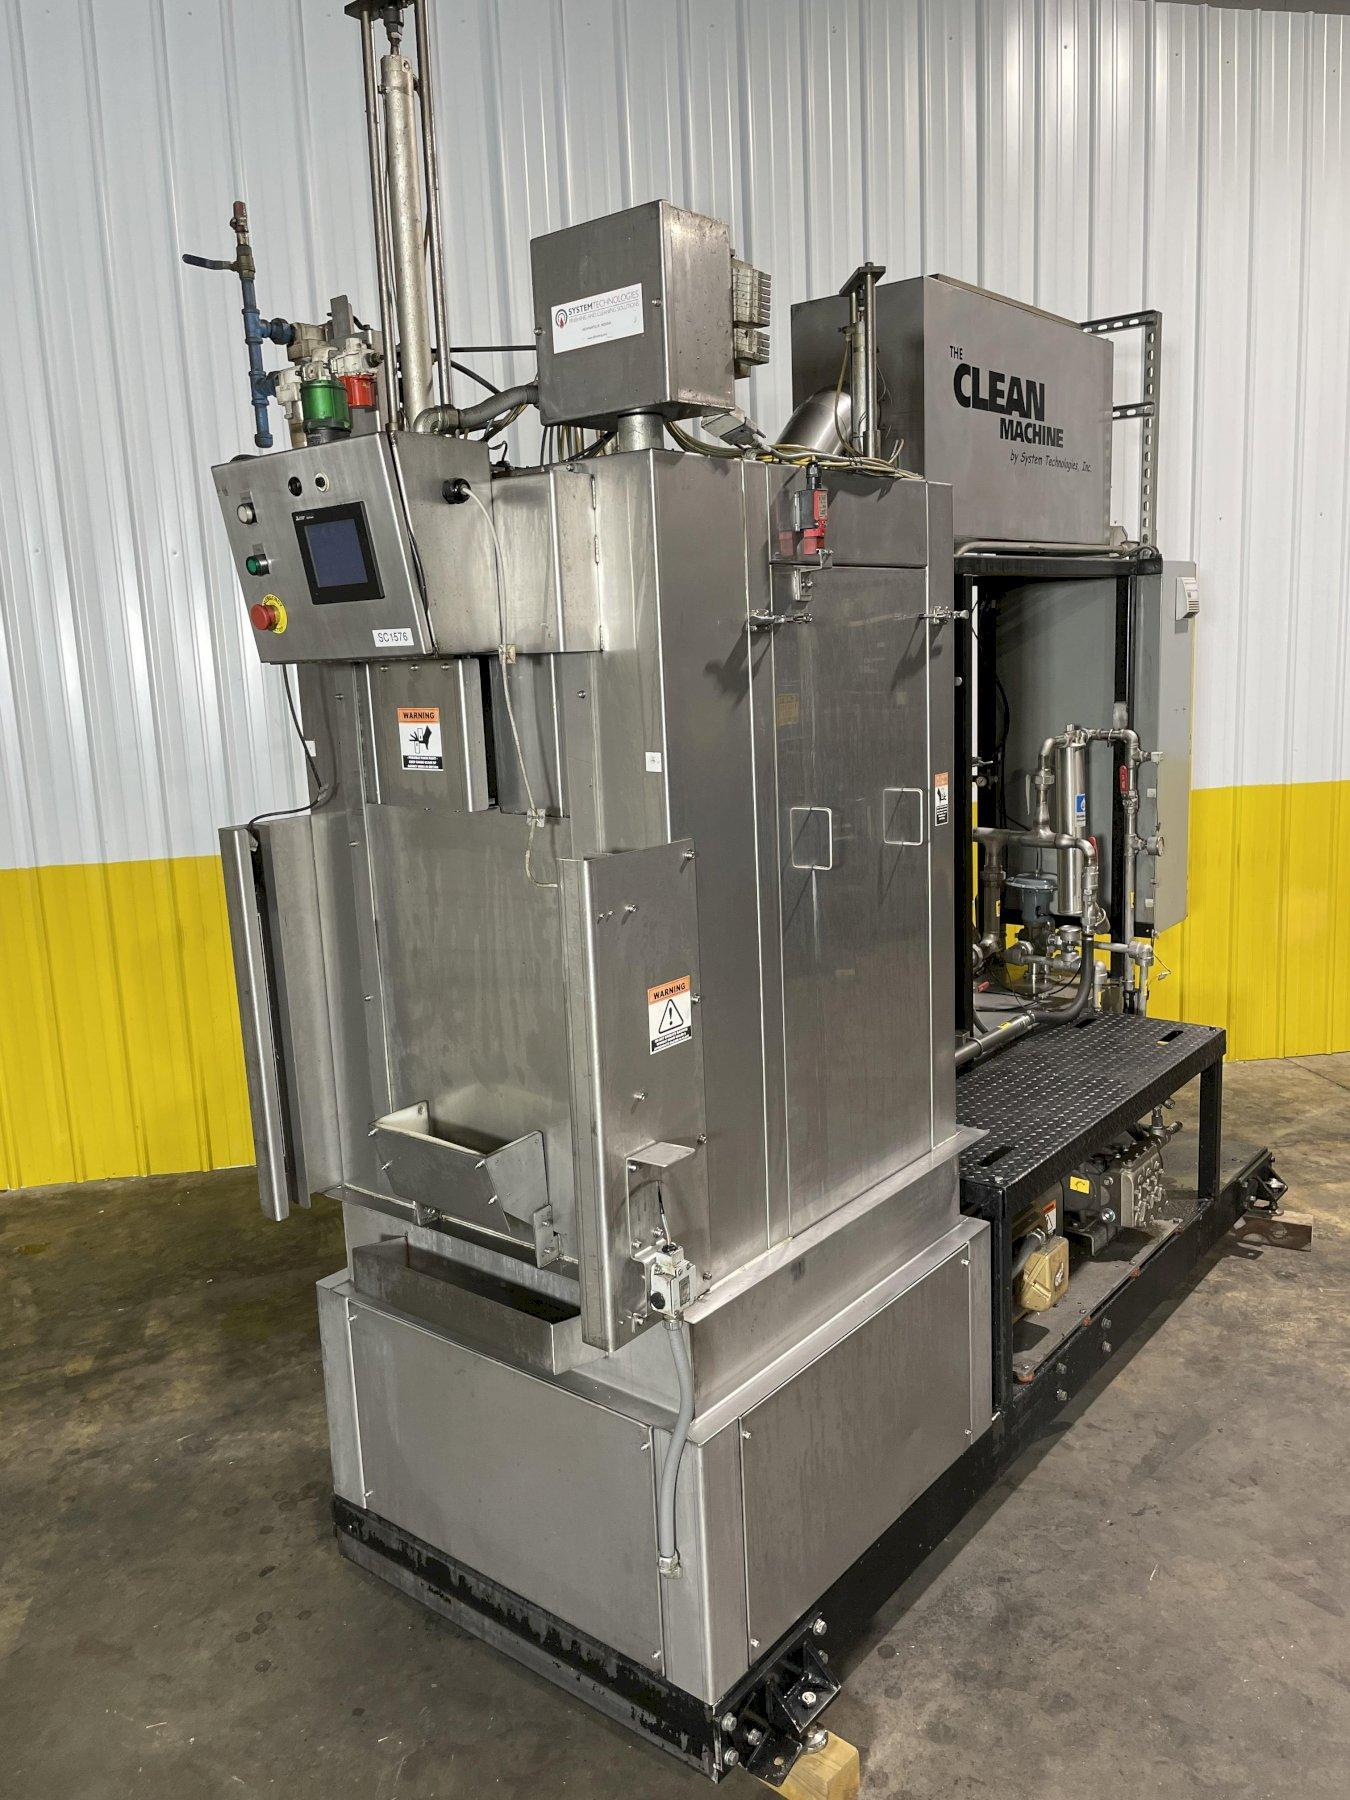 SYSTEM TECHNOLOGIES MODEL @CMI-123-480 CLEAN MACHINE HIGH PRESSURE STAINLESS STEEL PARTS WASHER: STOCK #14483